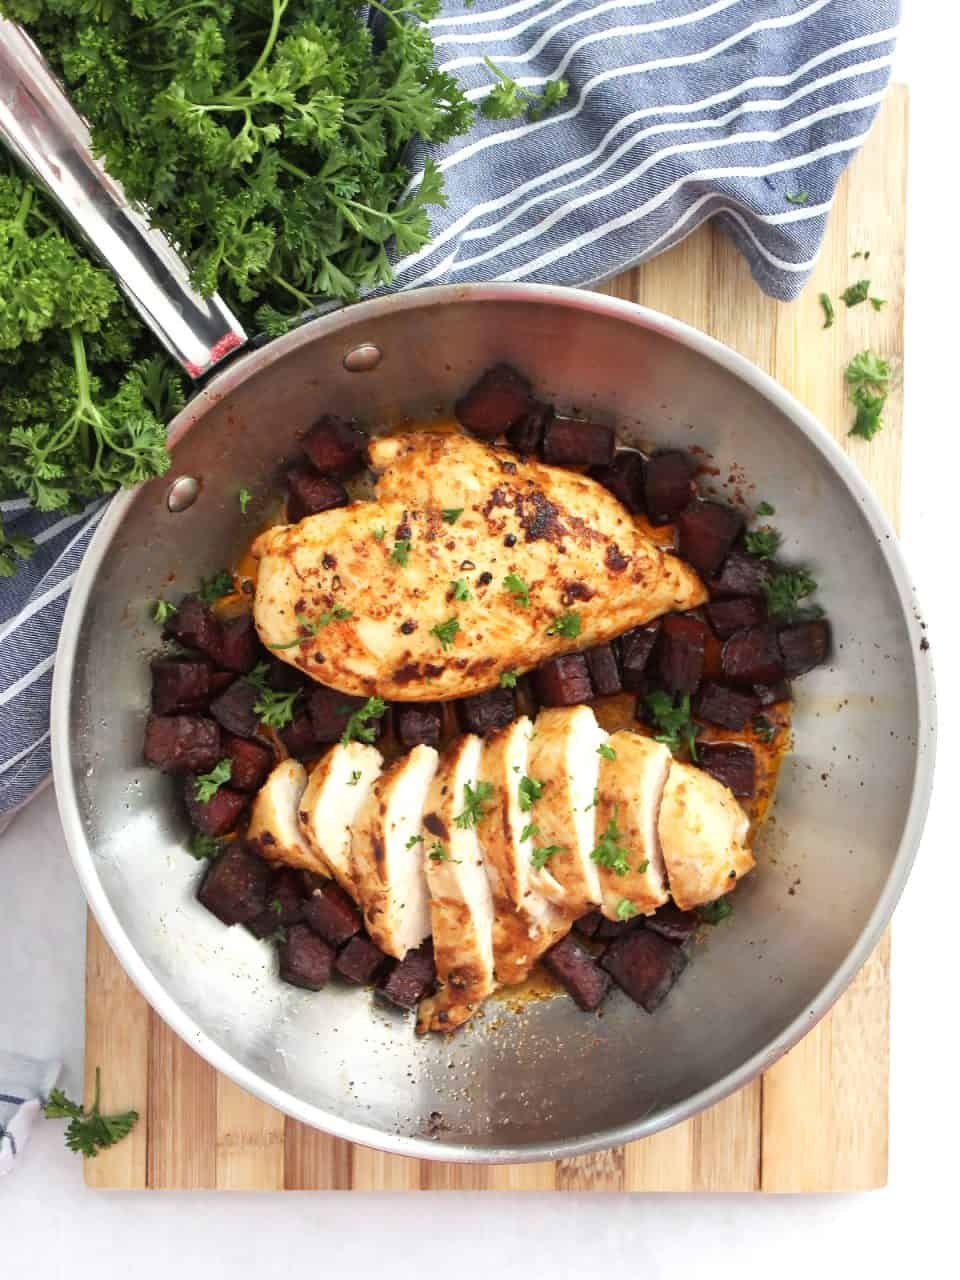 Two chicken breasts in a skillet with chorizo. One chicken breast is sliced into pieces.